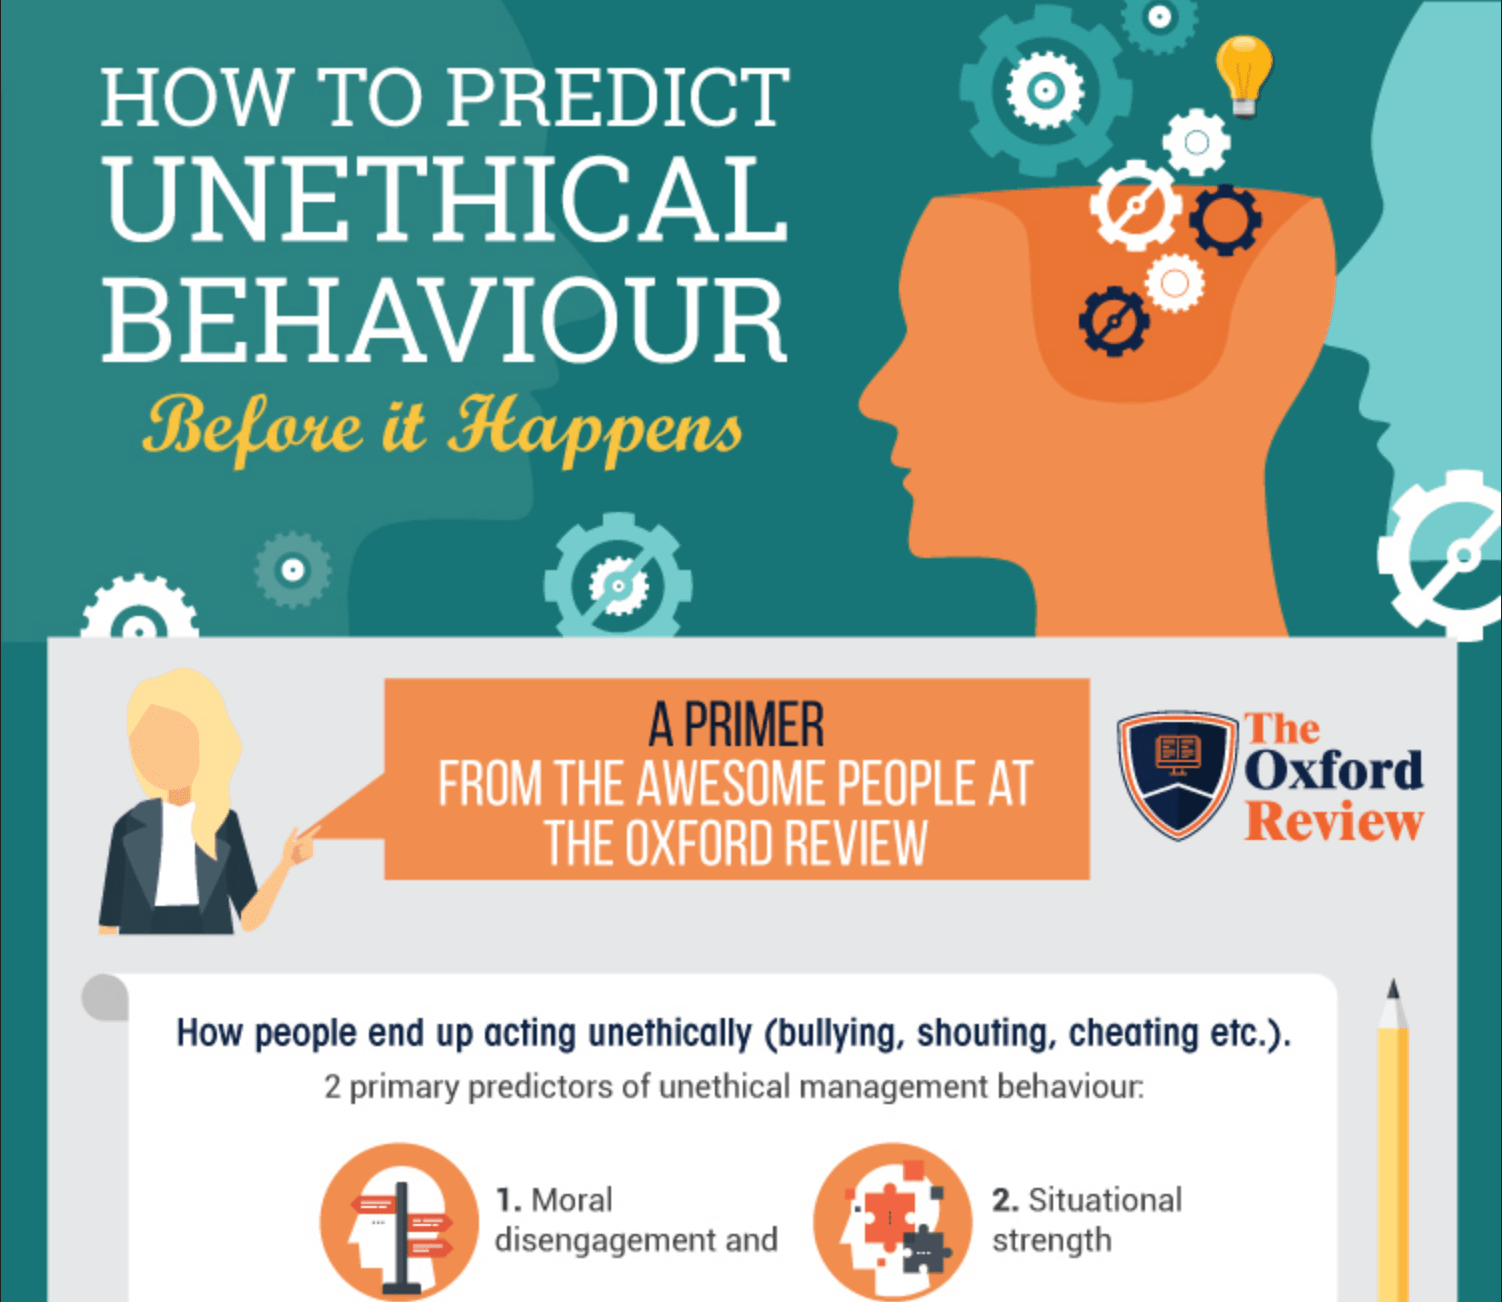 How to predict unethical behaviour infographic